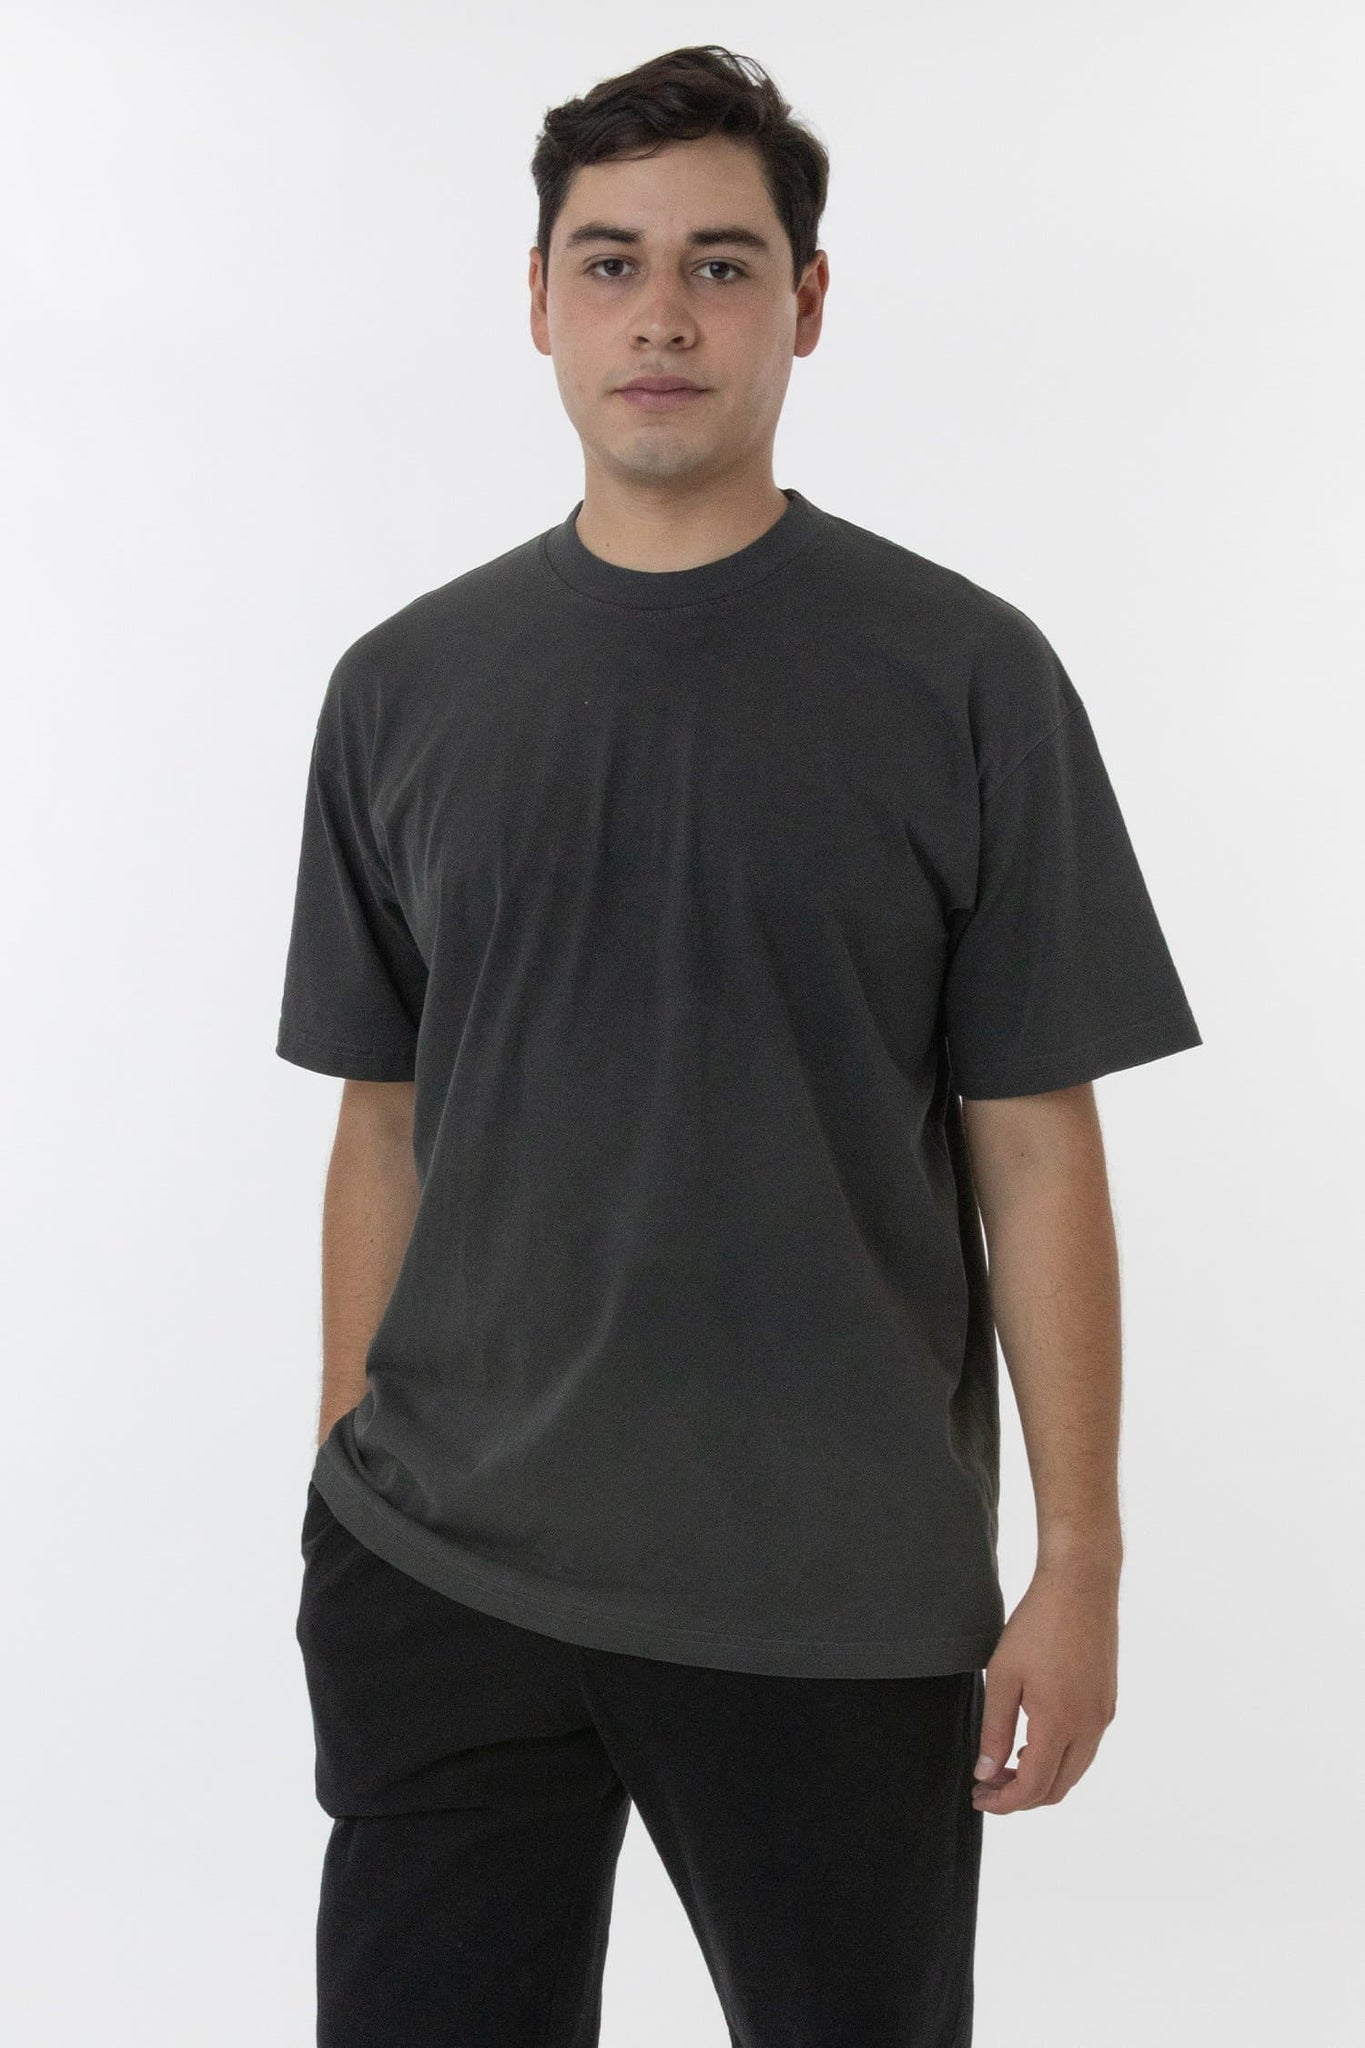 1801GD - 6.5oz Pigment Dye Crew Neck T-Shirt